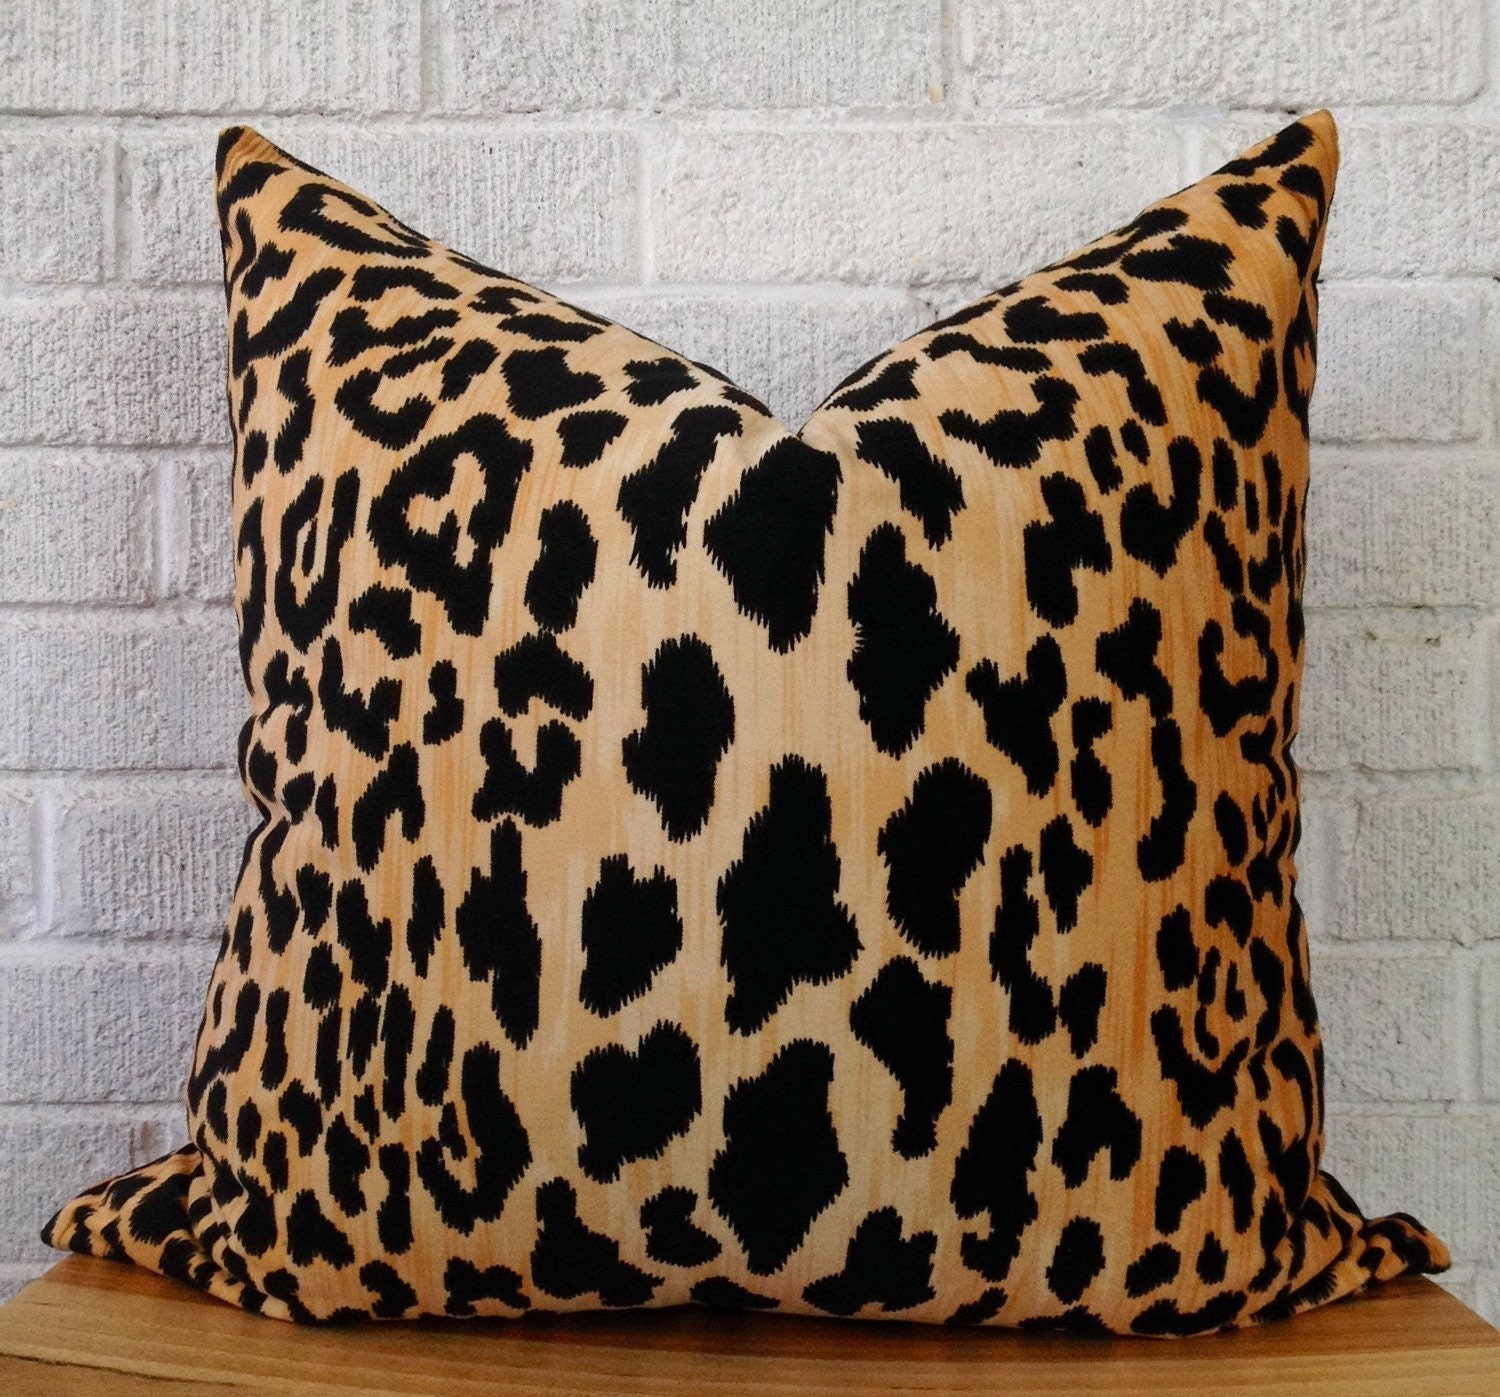 Velvet Cheetah Pillow Cover Square leopard black gold animal